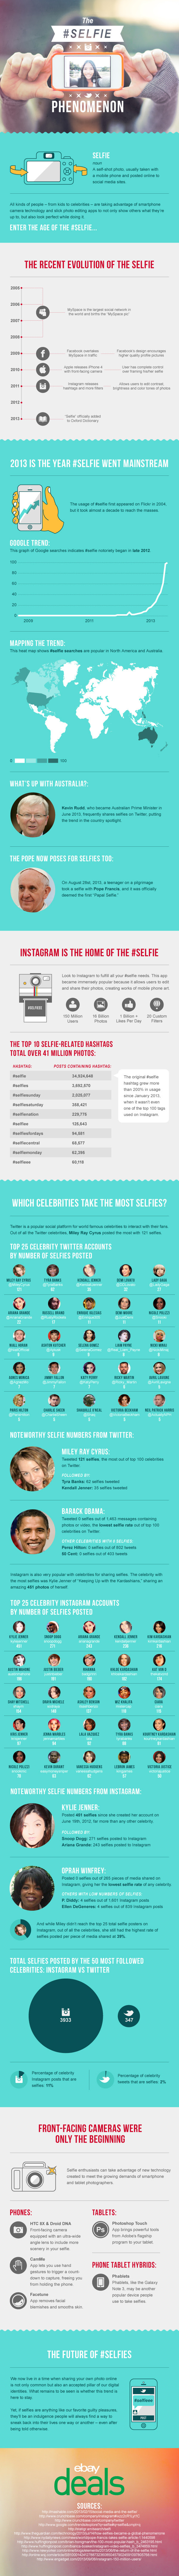 Rise Of Selfie - The Rise Of Self Photos - Selfie [INFOGRAPHIC]